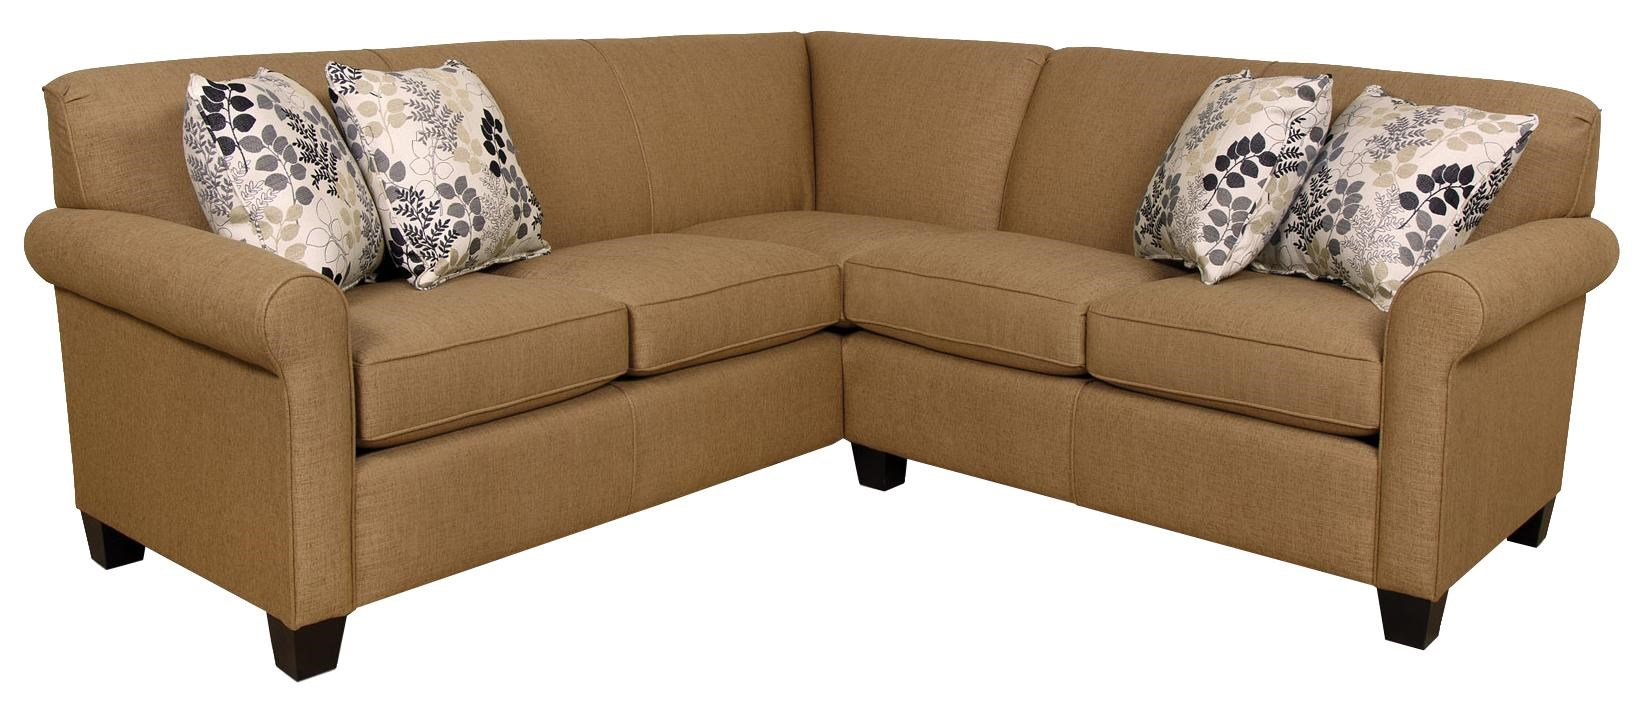 Sectional Corner Couch Angie Small Corner Sectional Sofa By England At Dunk Bright Furniture